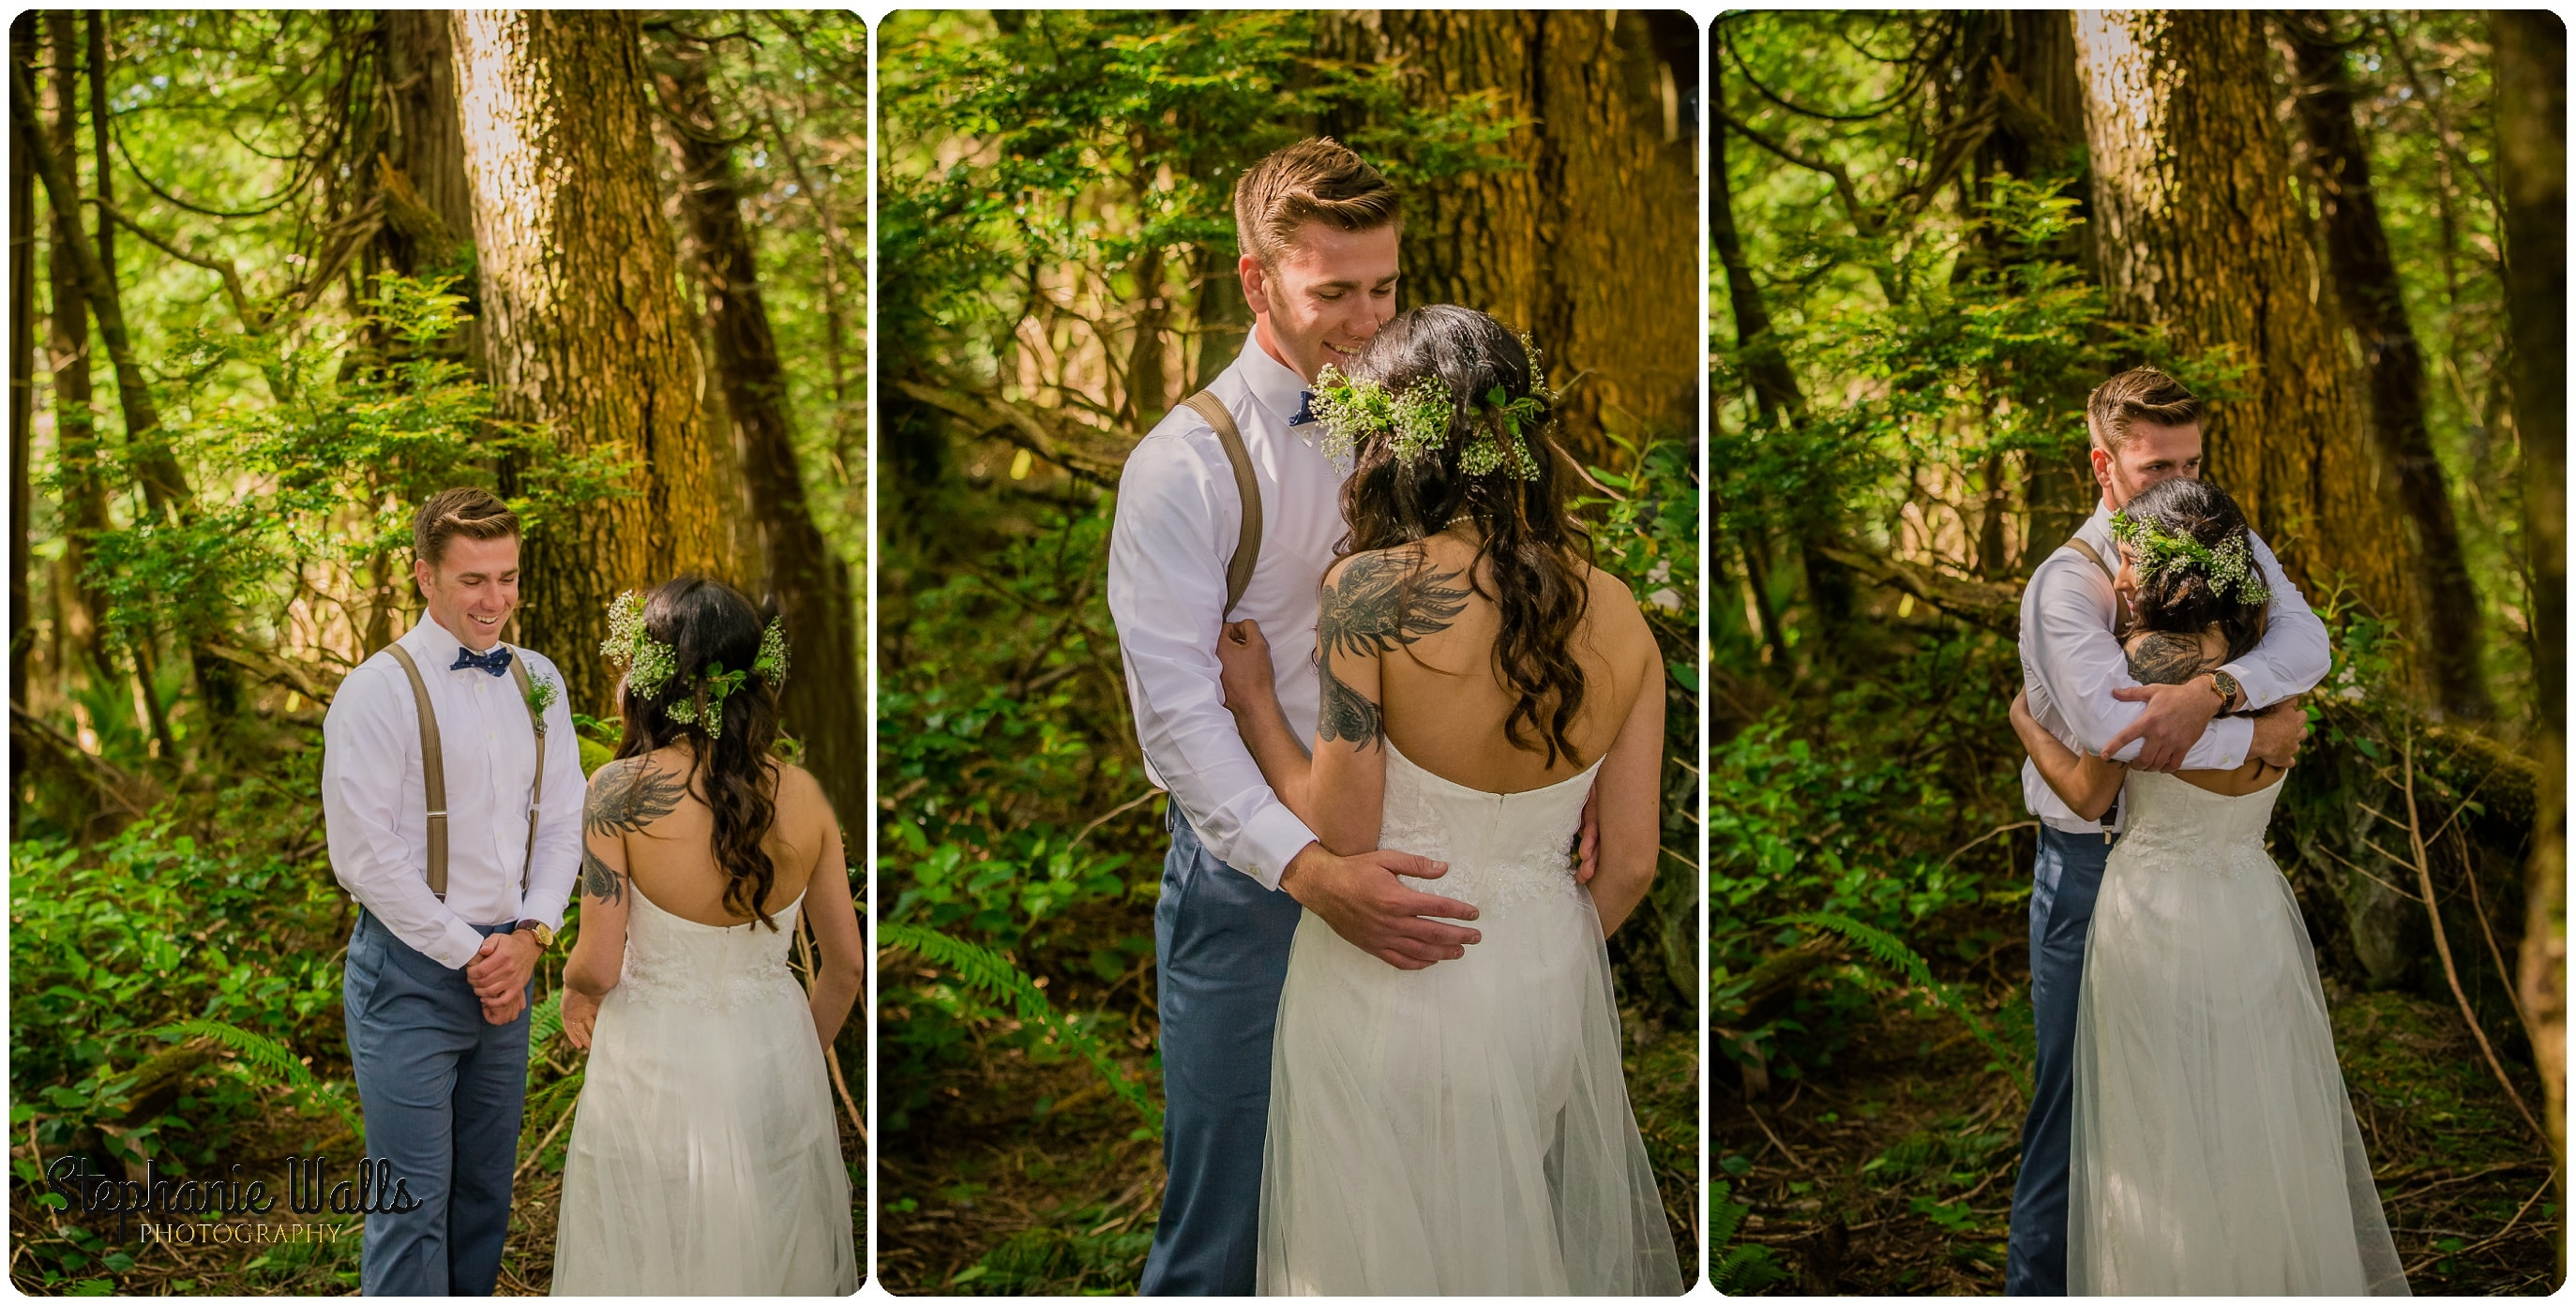 belfour 023 INTIMATE CLIFFSIDE ELOPEMENT | CAPE FLATTERY NEAH BAY | STEPHANIE WALLS PHOTOGRAPHY